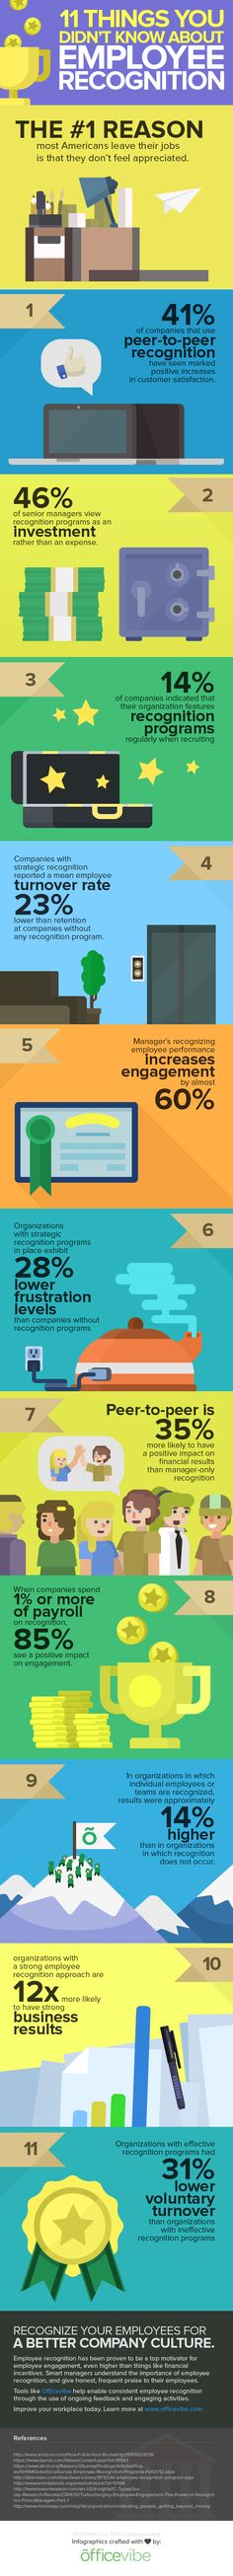 How to Keep Your Top Employees From Leaving #infographic http://bit.ly/1zHwgXN